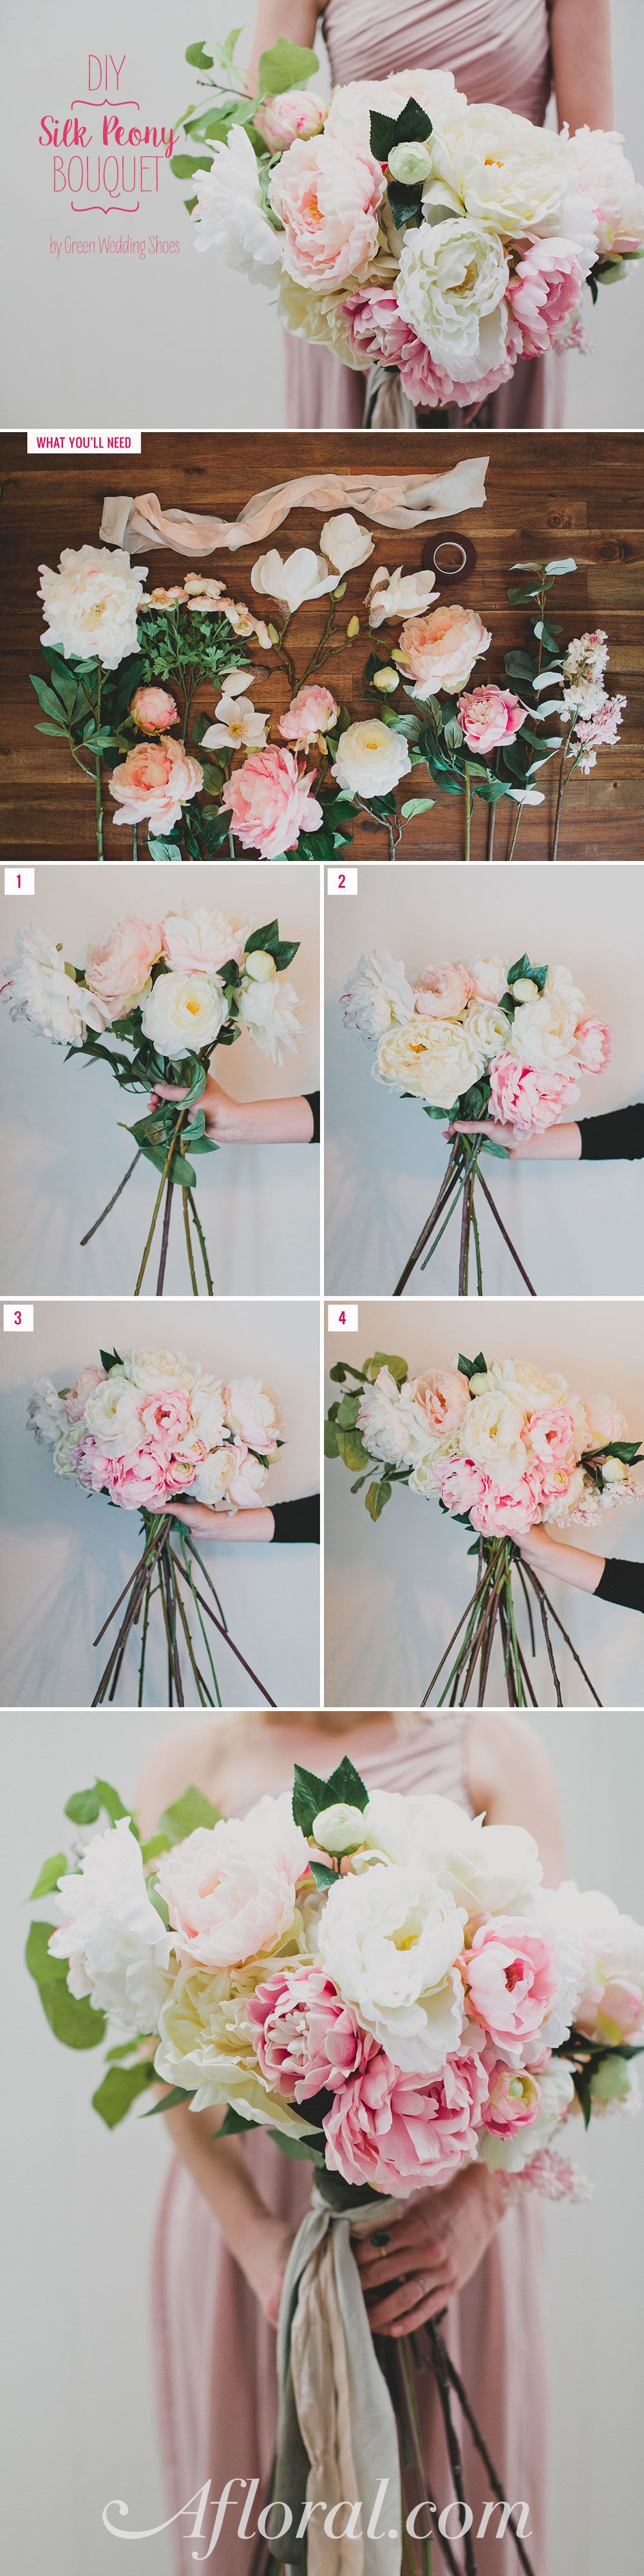 Diy peony bouquet fairy tale wedding pinterest pink silk make your own wedding bouquets with silk flowers from afloral this bouquet is made with pink silk peonies and faux greenery can you believe it izmirmasajfo